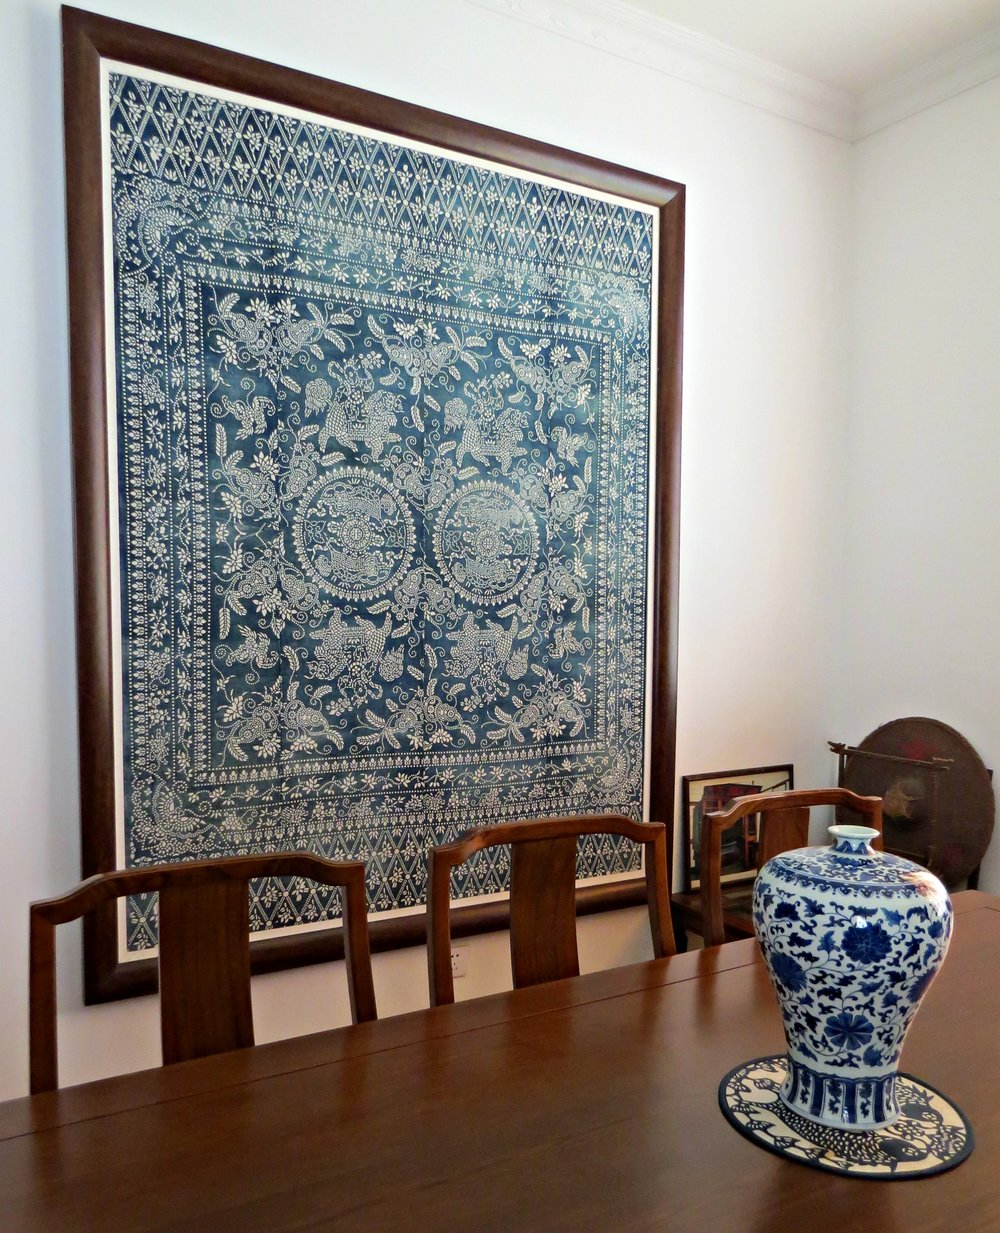 A framed piece of antique cloth, displayed with some blue and white pottery at the Chinese Blue Nankeen Exhibiton Hall in Shanghai